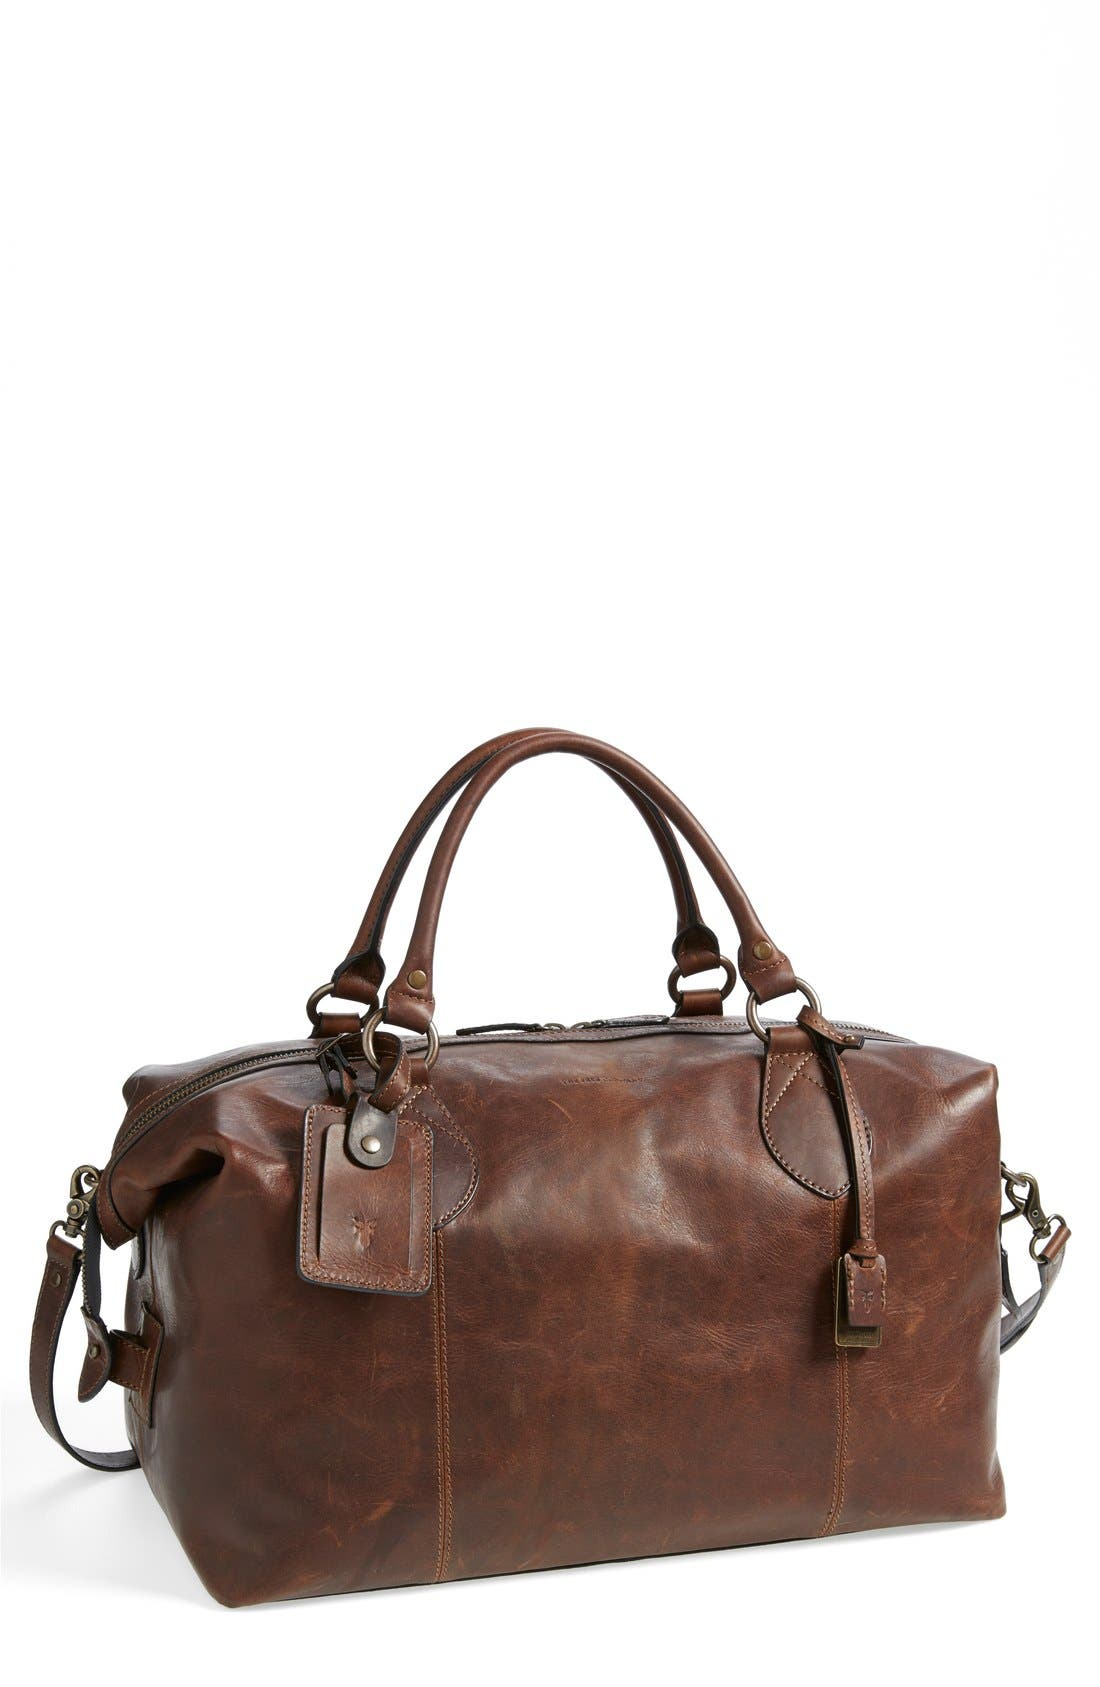 FRYE 'Logan' Leather Overnight Bag - Beige (Online Only) in Dark Brown